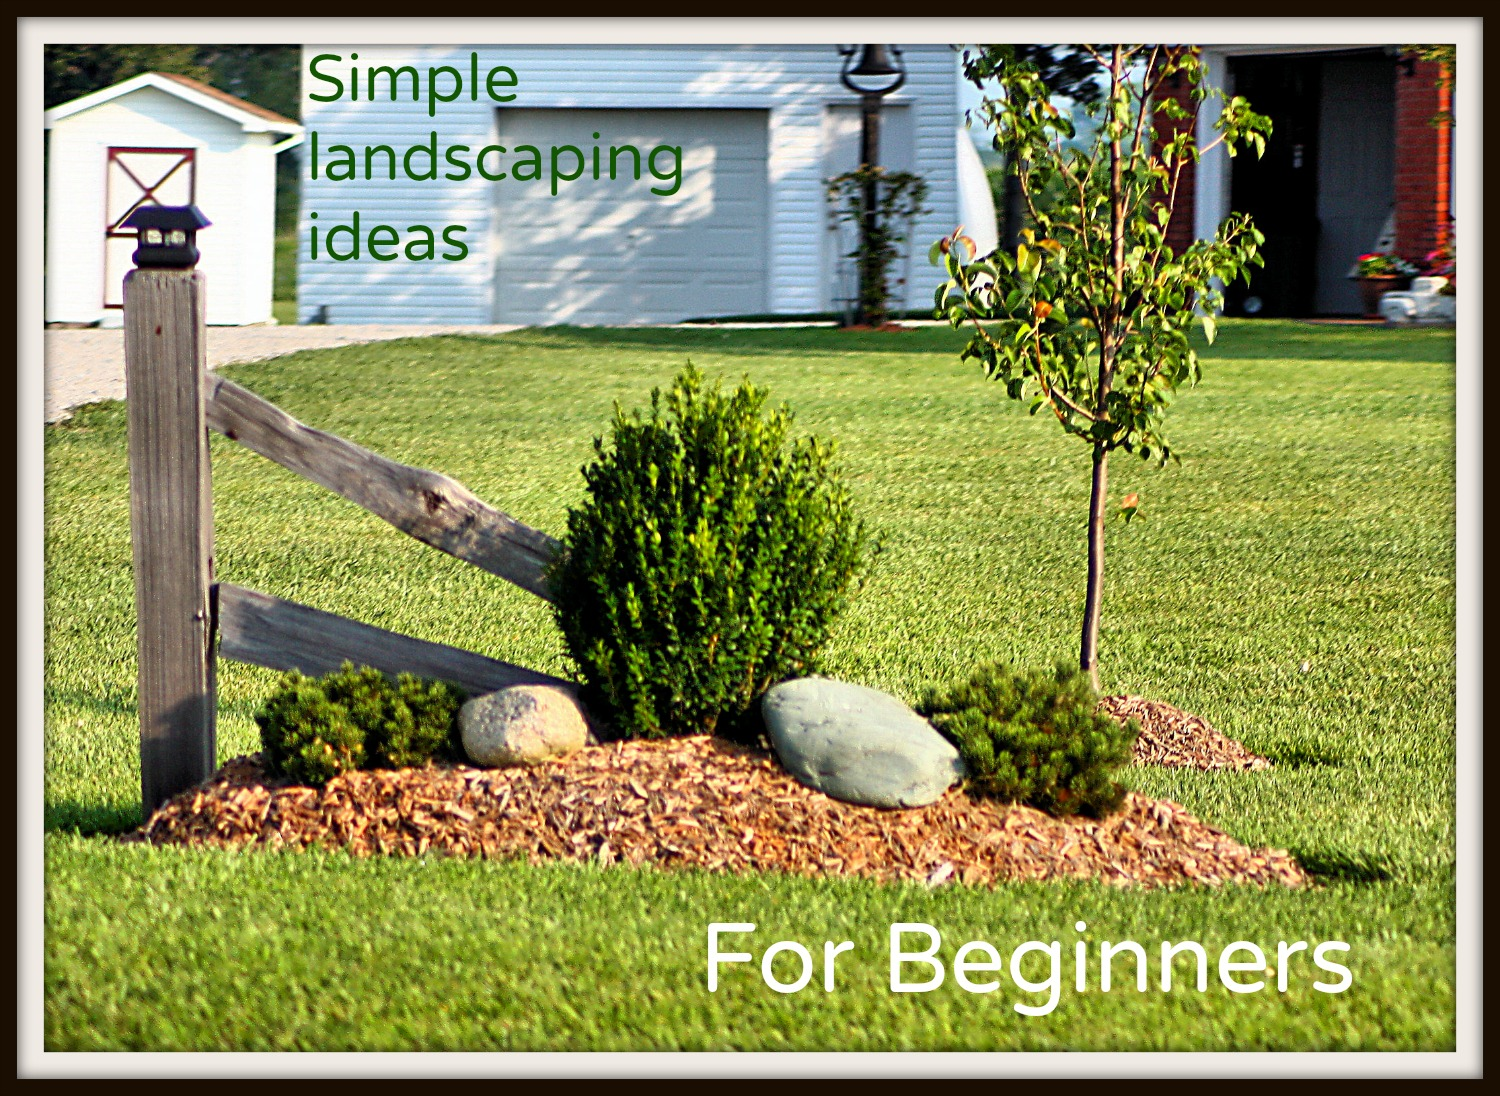 Simple landscaping ideas for beginners frador for Simple garden design ideas